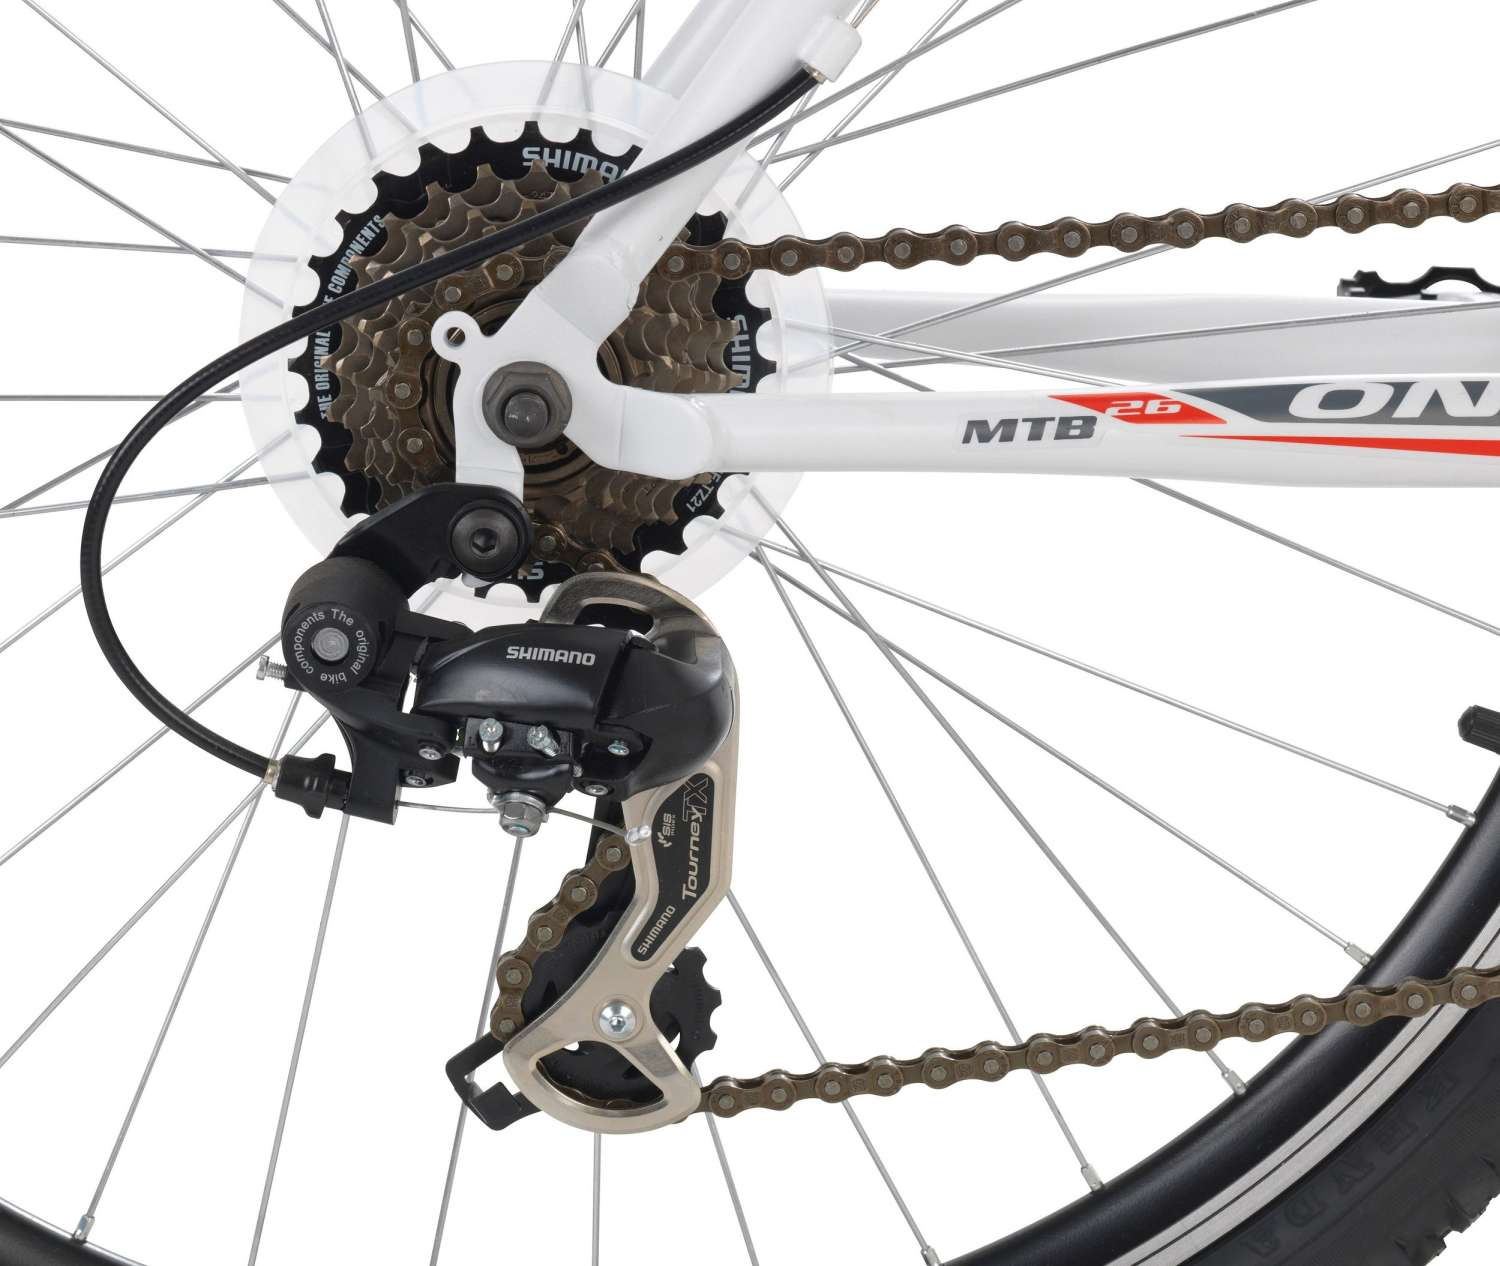 onux morning 26 zoll mountainbike wei hardtails. Black Bedroom Furniture Sets. Home Design Ideas